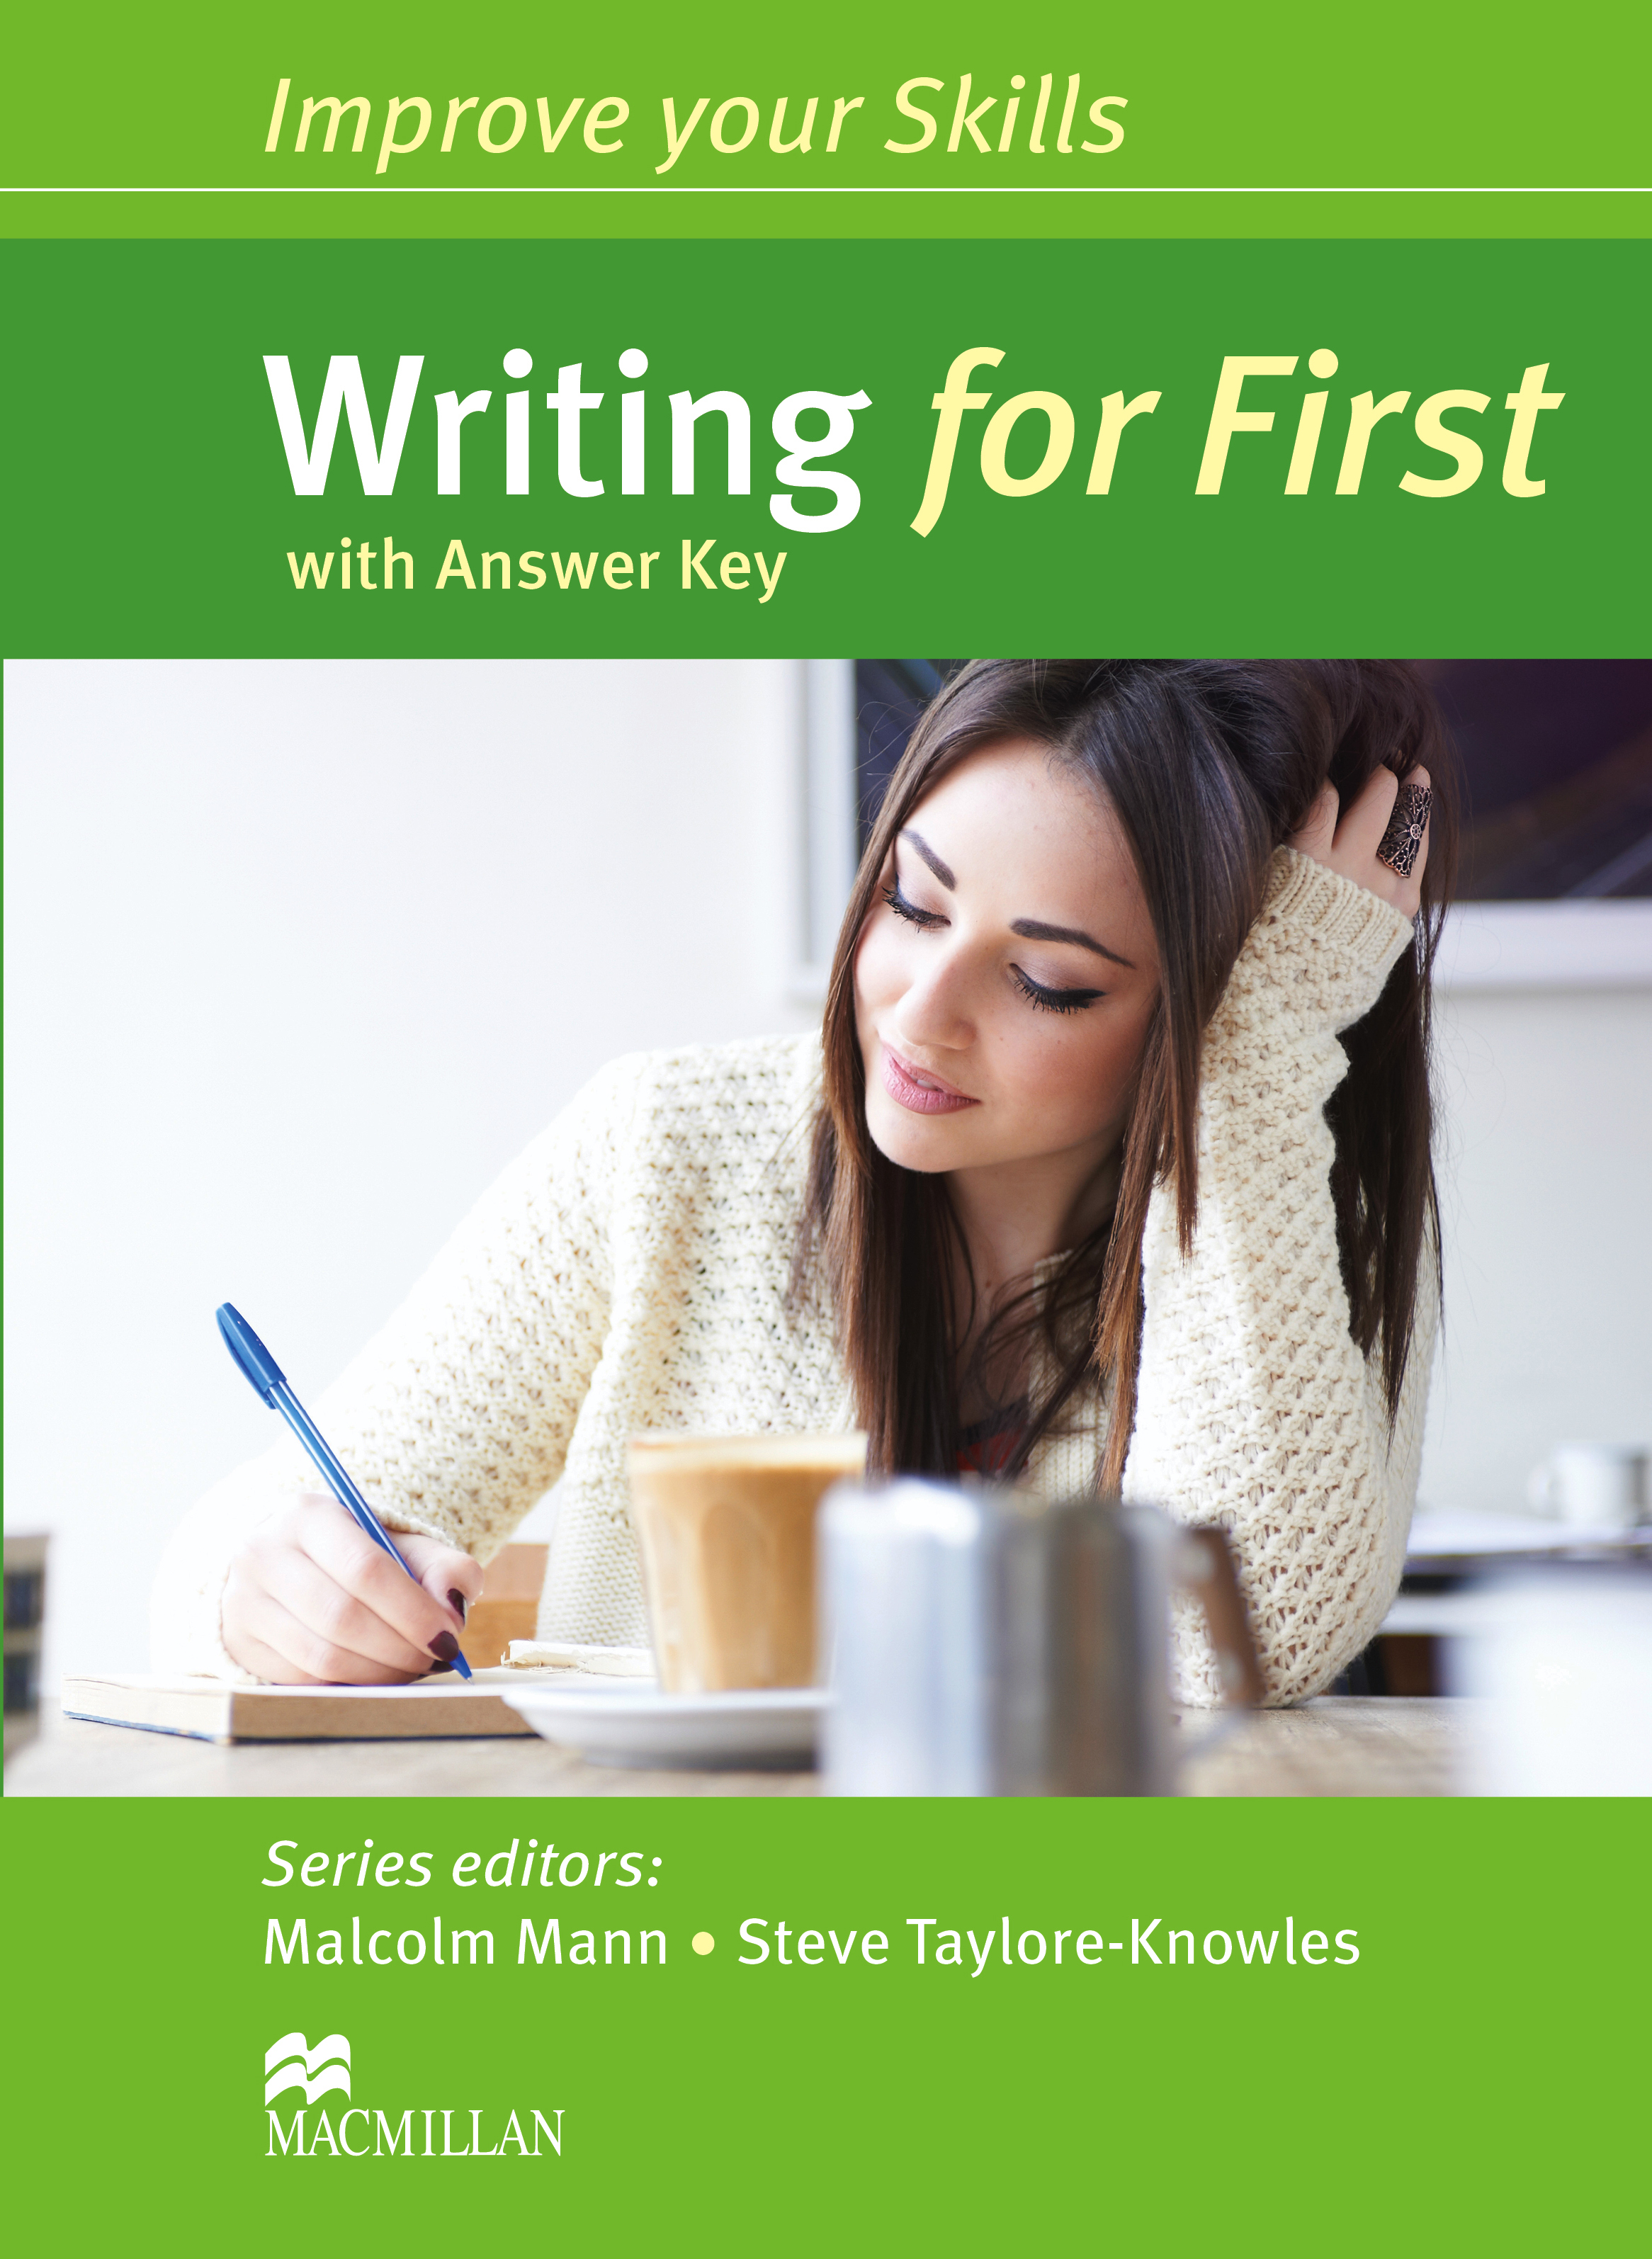 Improve your Skills: Writing for First Student